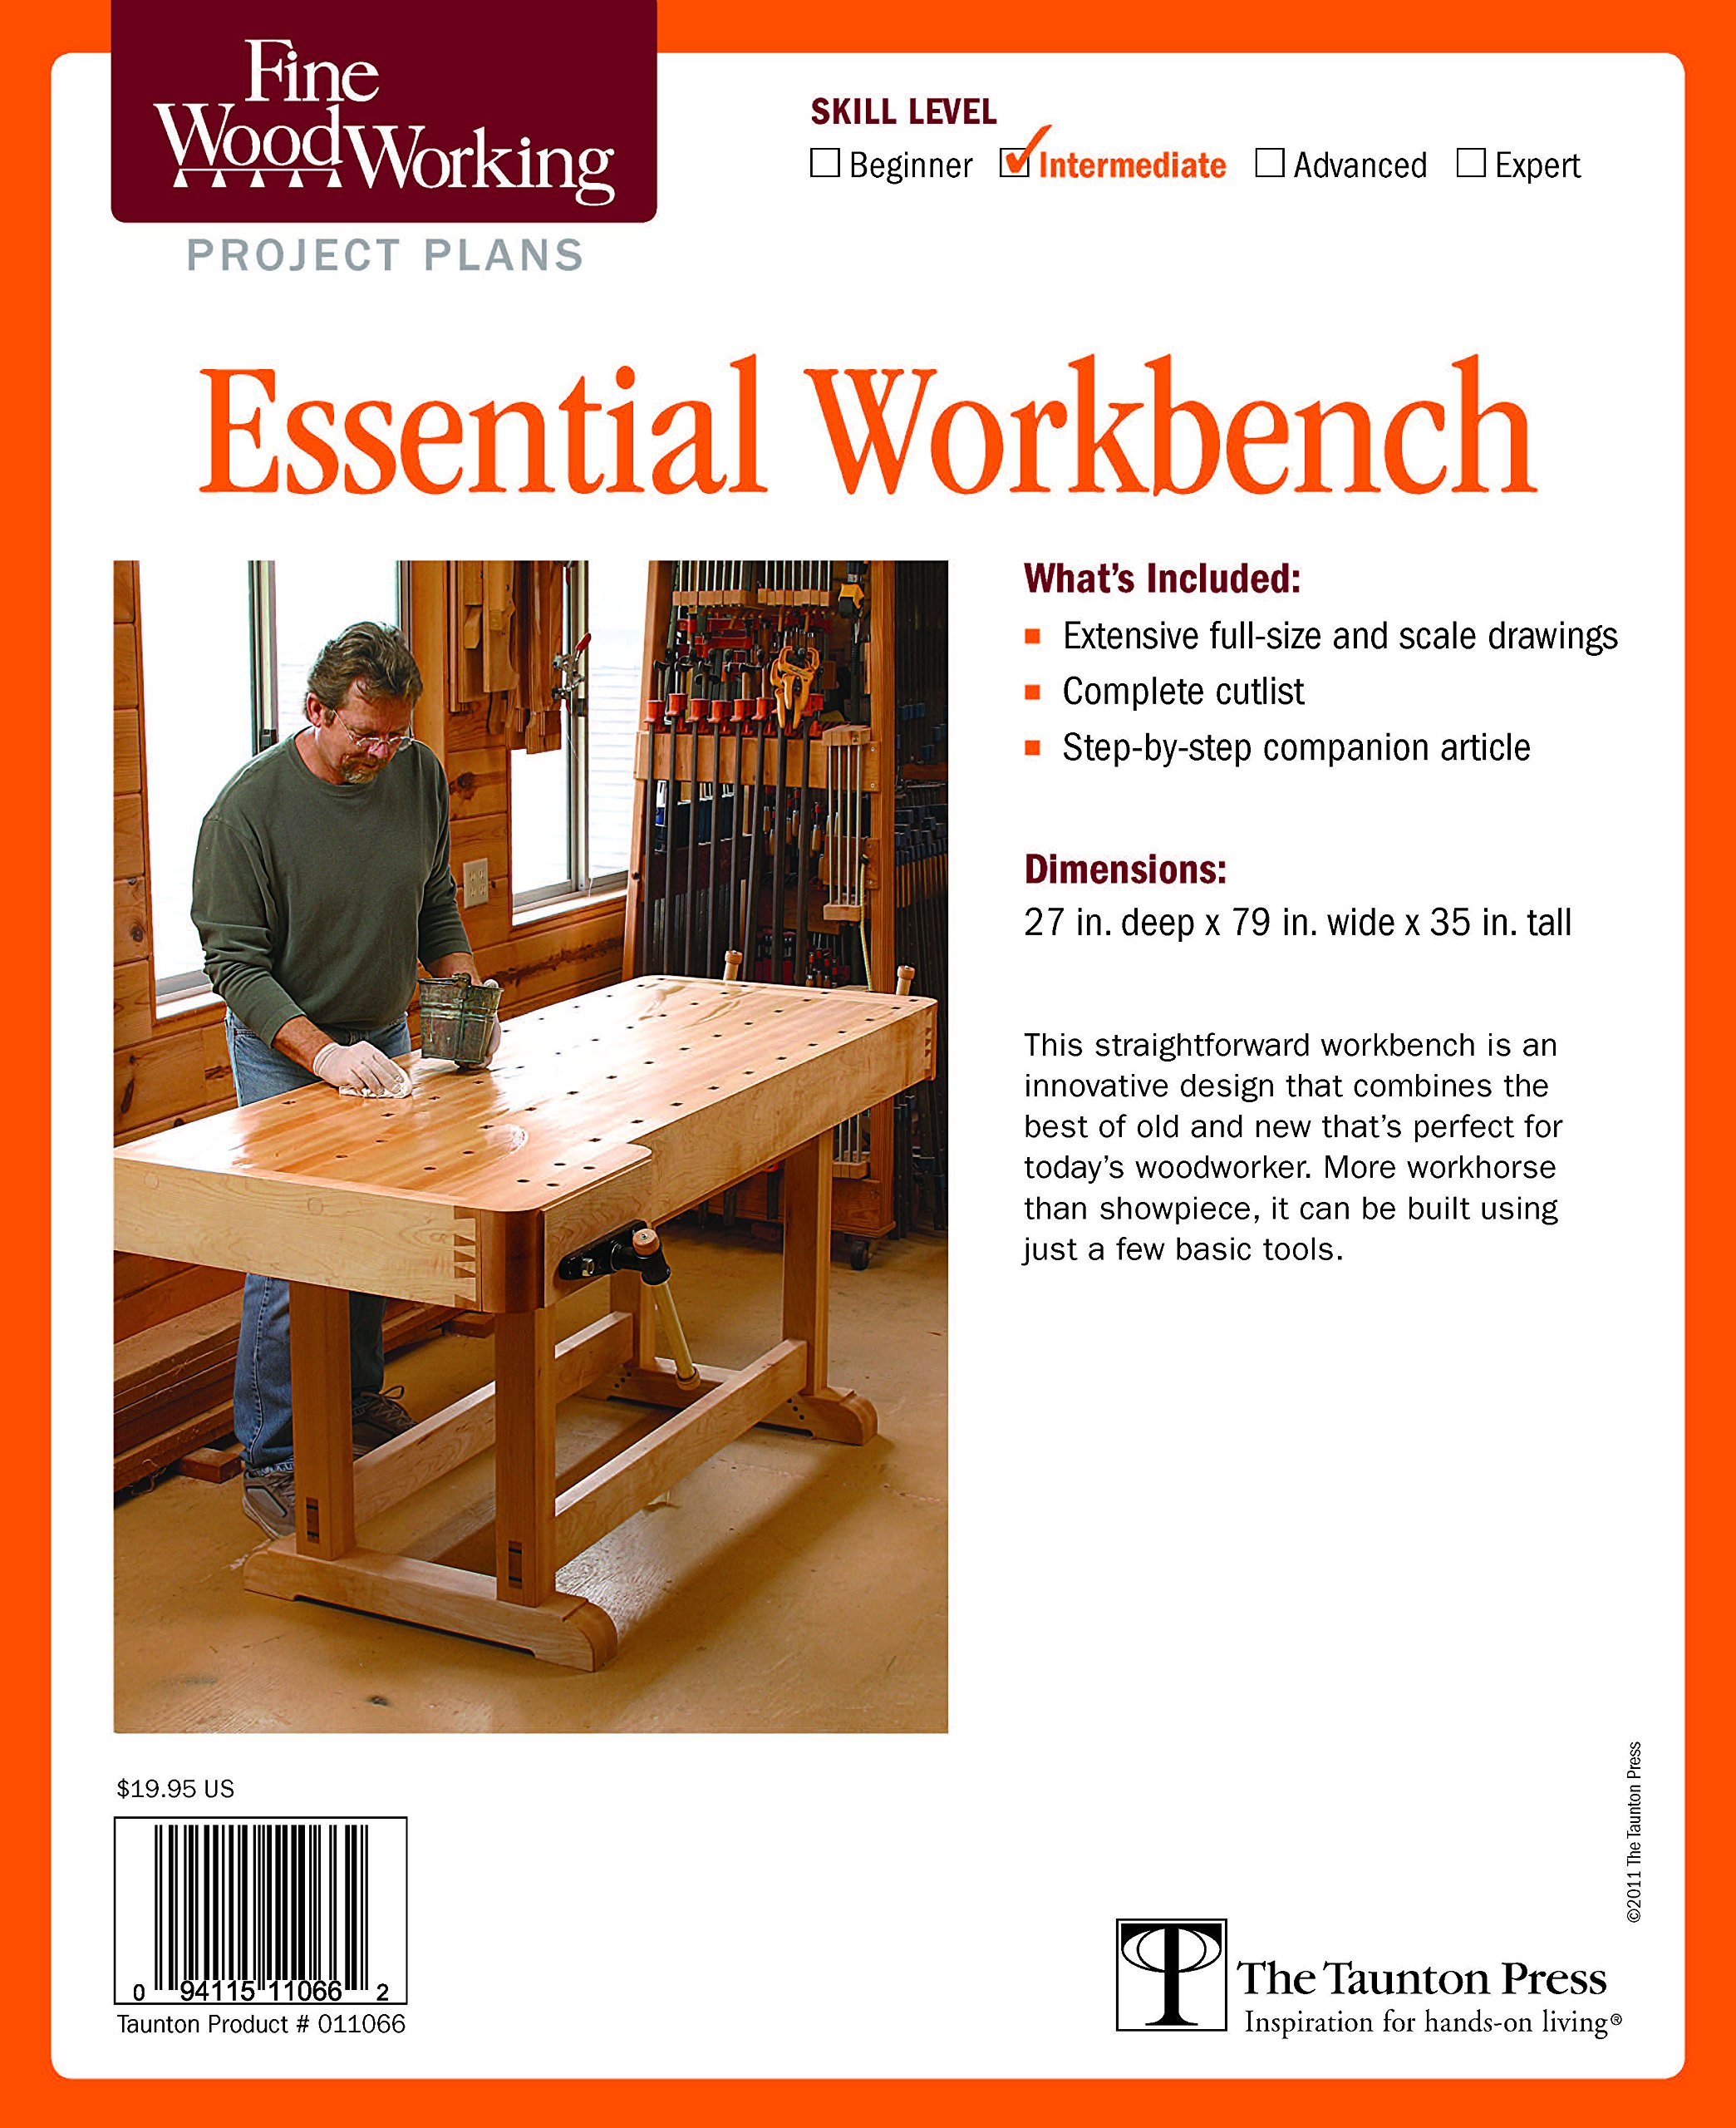 Fine Woodworking's Essential Workbench Plan